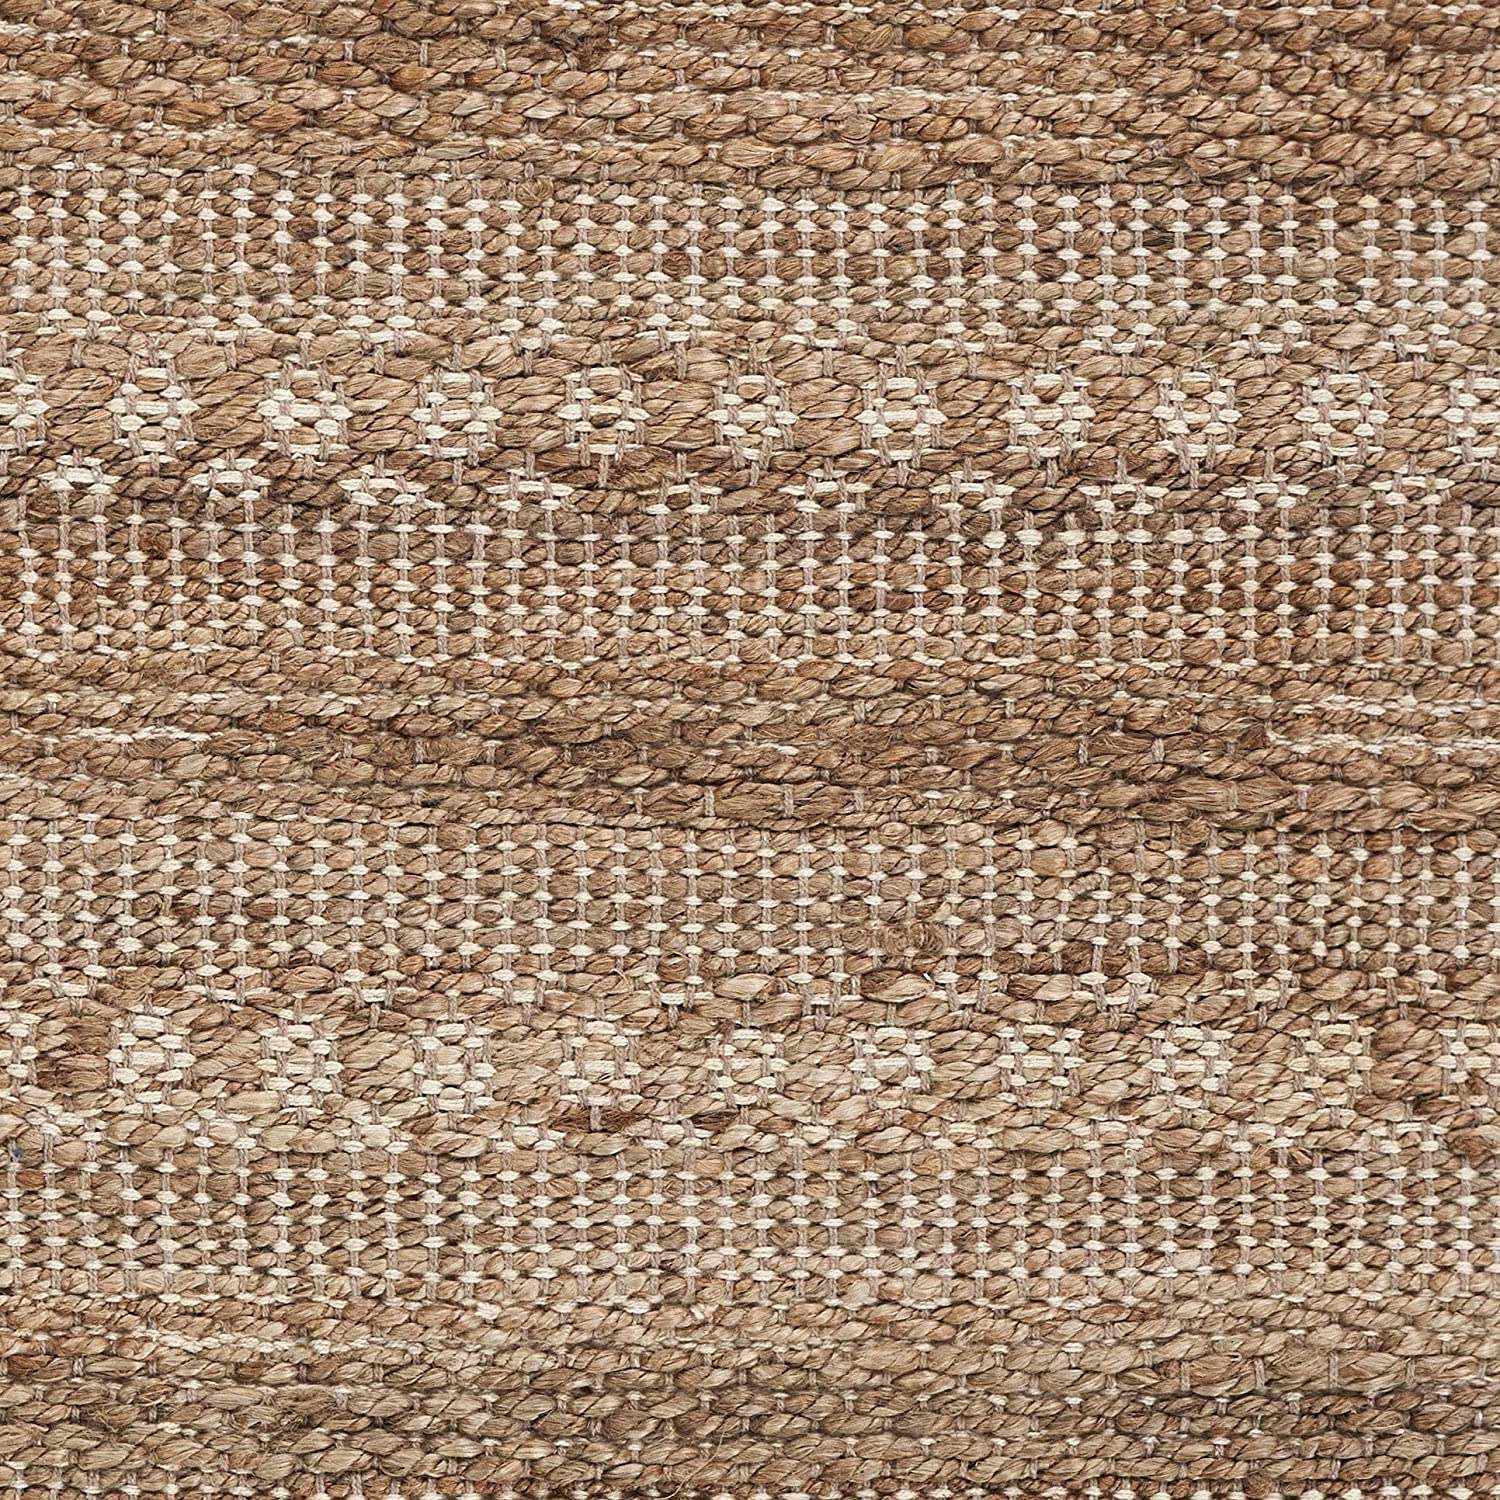 "MISC Delicate Natural Area Rug 2'6"" X 3'10"" Tan Geometric Bohemian Eclectic Casual Global Cotton Jute Contains Latex Handmade"